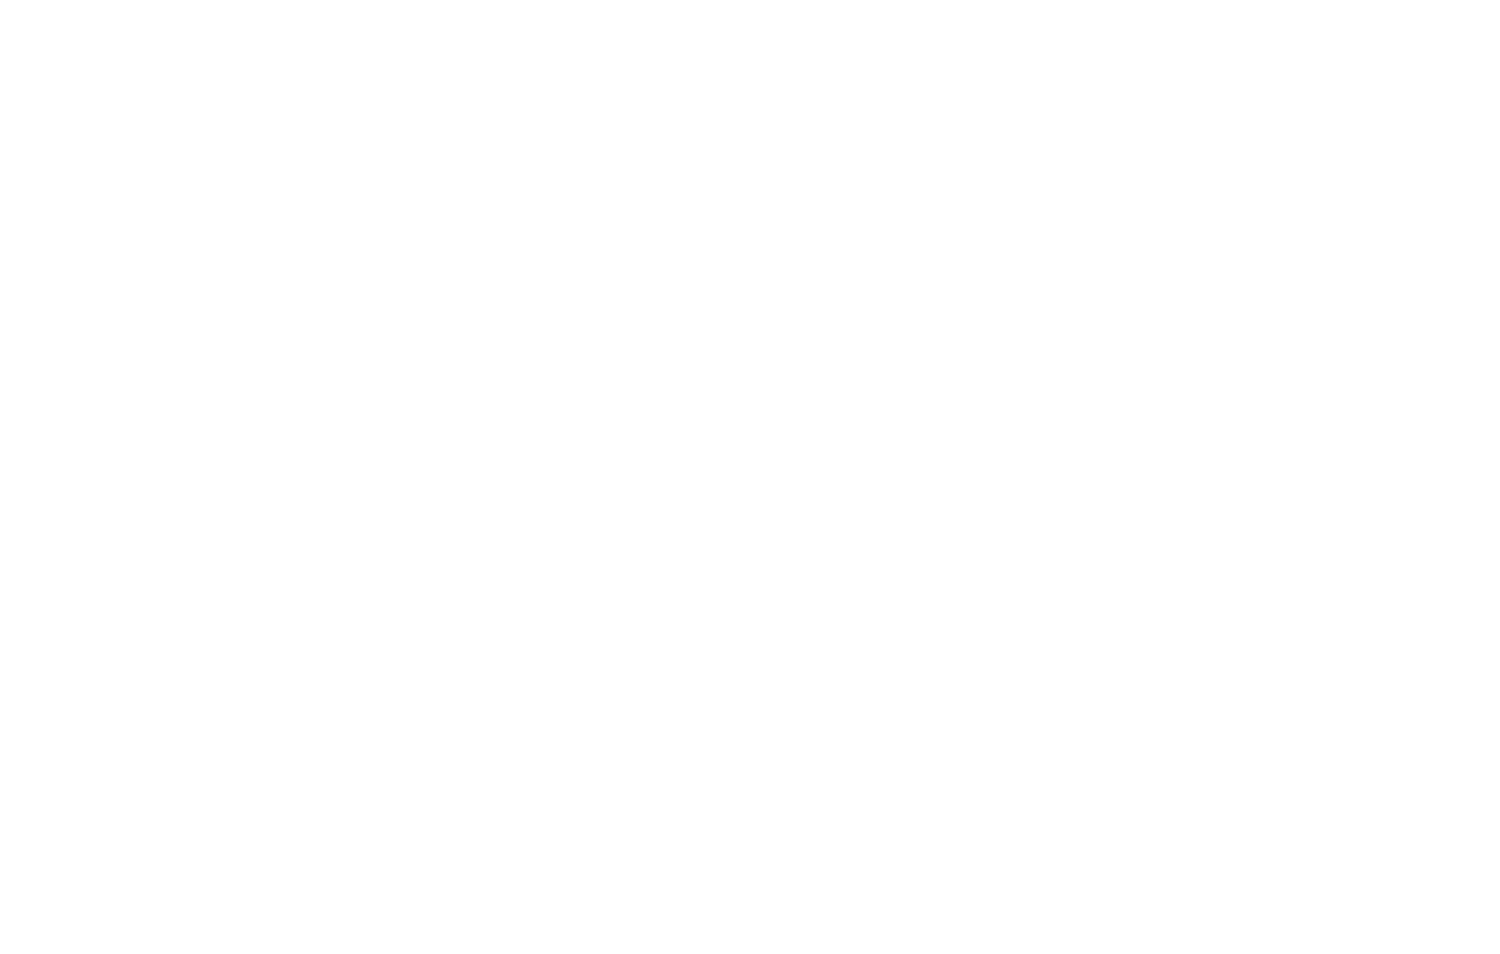 GB Culinary | Boutique Caterer & Farm | Boulder CO